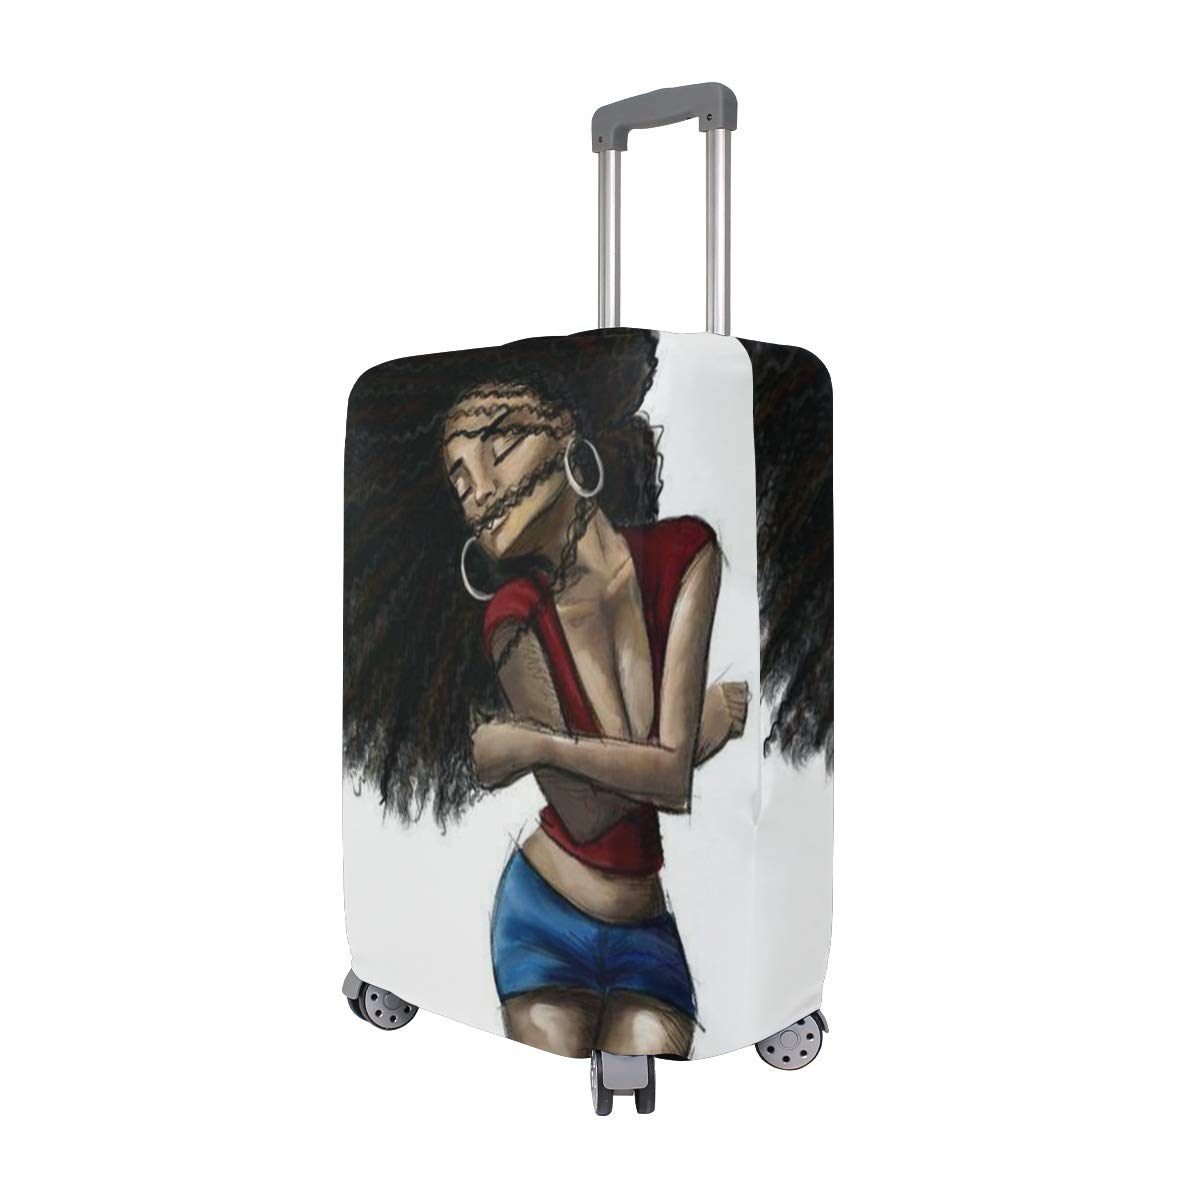 Travel Luggage Cover DIY Prints Protector Suitcase Baggage Fit 18-32 inch - Love Black Hair Art by banks jacqueline shop (Image #2)